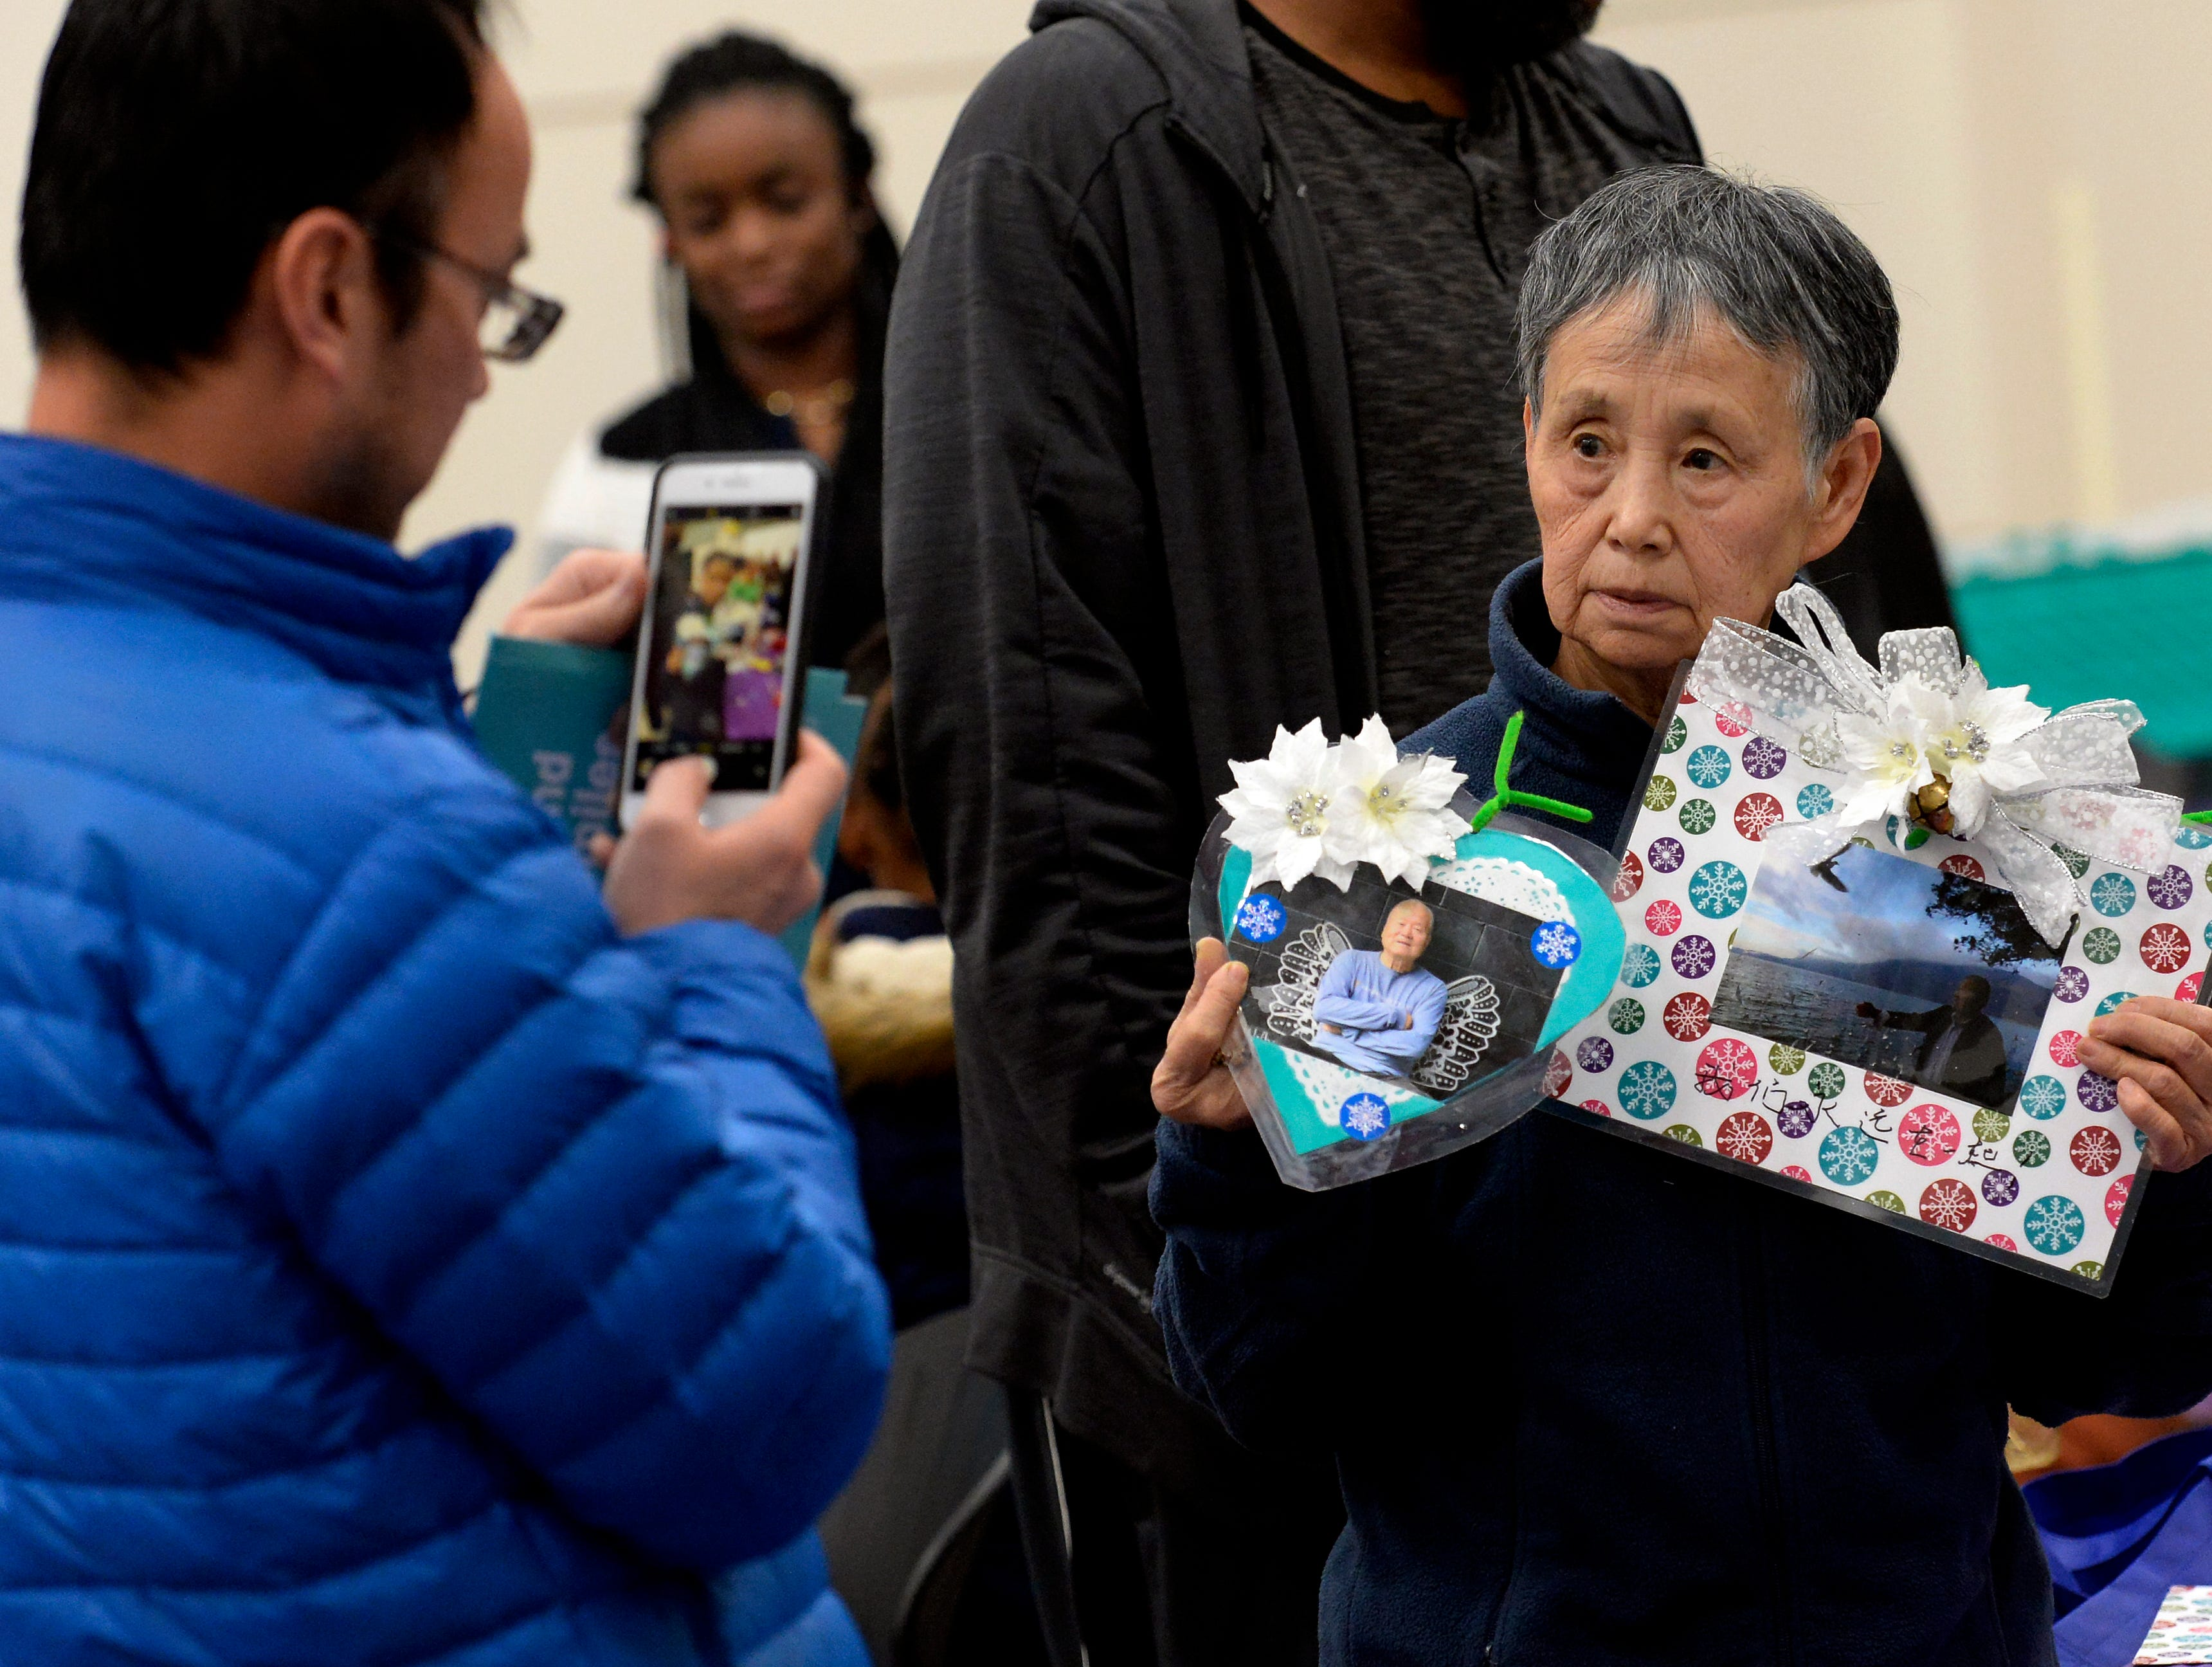 Youg Ling Zhai holds ornaments with photos of her husband, Ruxin Wang, at the Metro Police Department's North Precinct on Tuesday, Dec. 11, 2018, in Nashville, Tenn. Her son, Yun Wang, takes a picture of her during the Victim Intervention Program, which is a community outreach program through the police department.